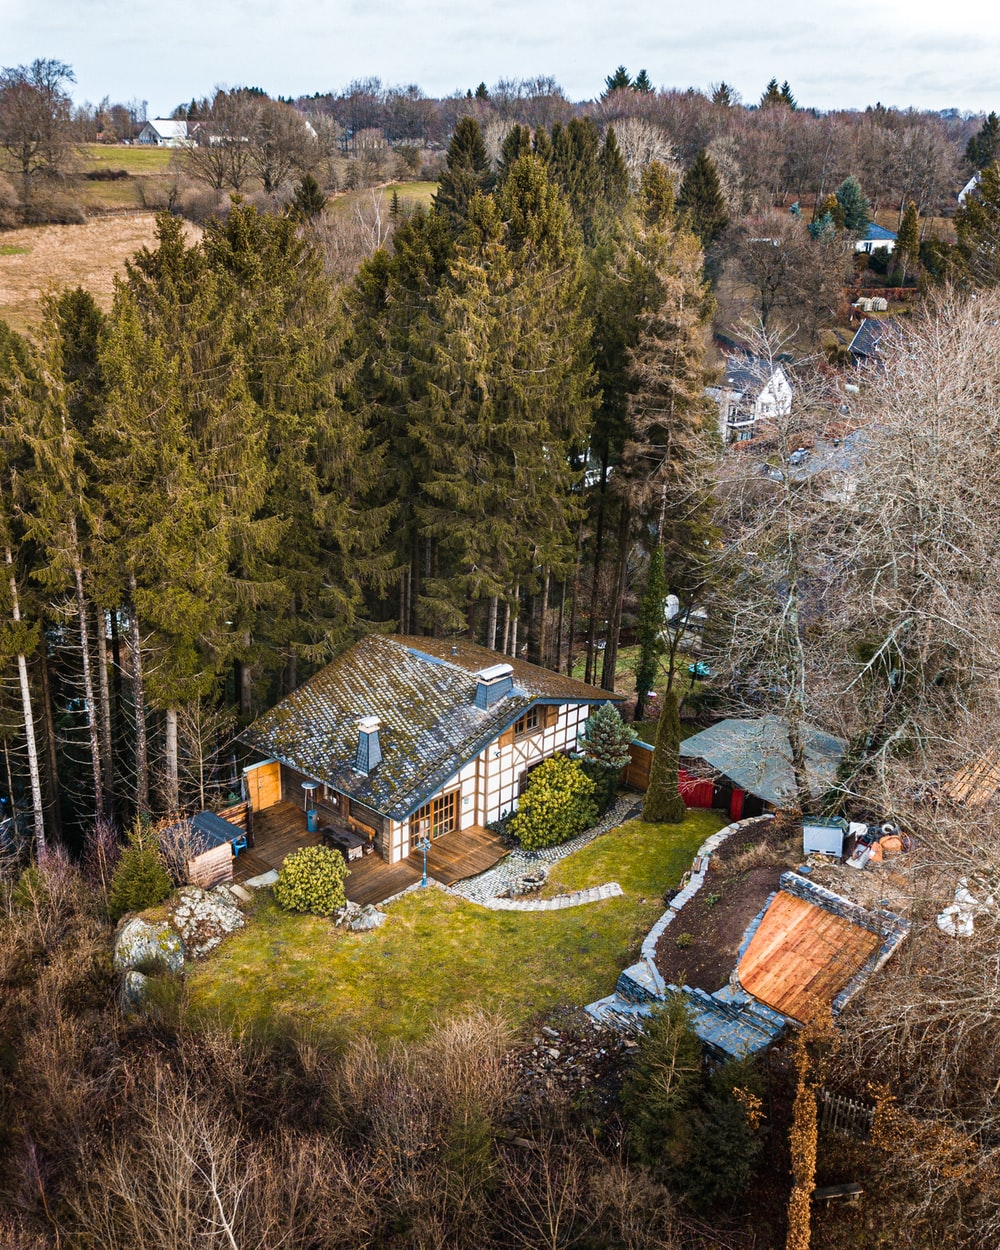 aerial photograph of shack beside trees